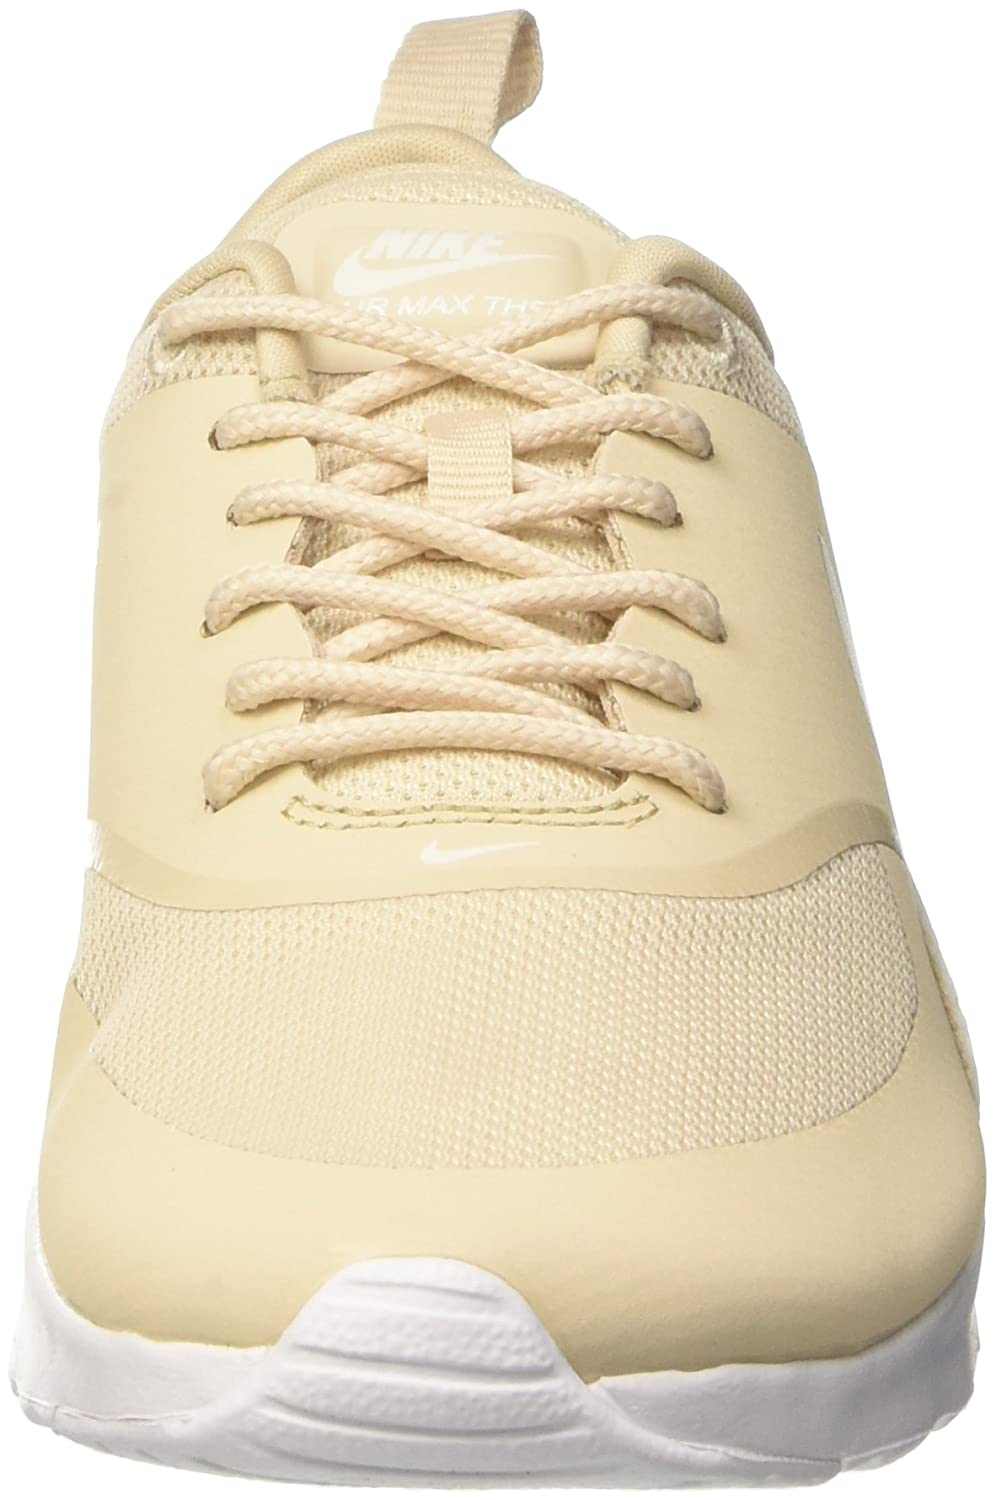 NIKE Low-Top Women's Air Max Thea Low-Top NIKE Sneakers, Black B01MR22HKF 9.5 B(M) US|Oatmeal/Sail-white 4def11